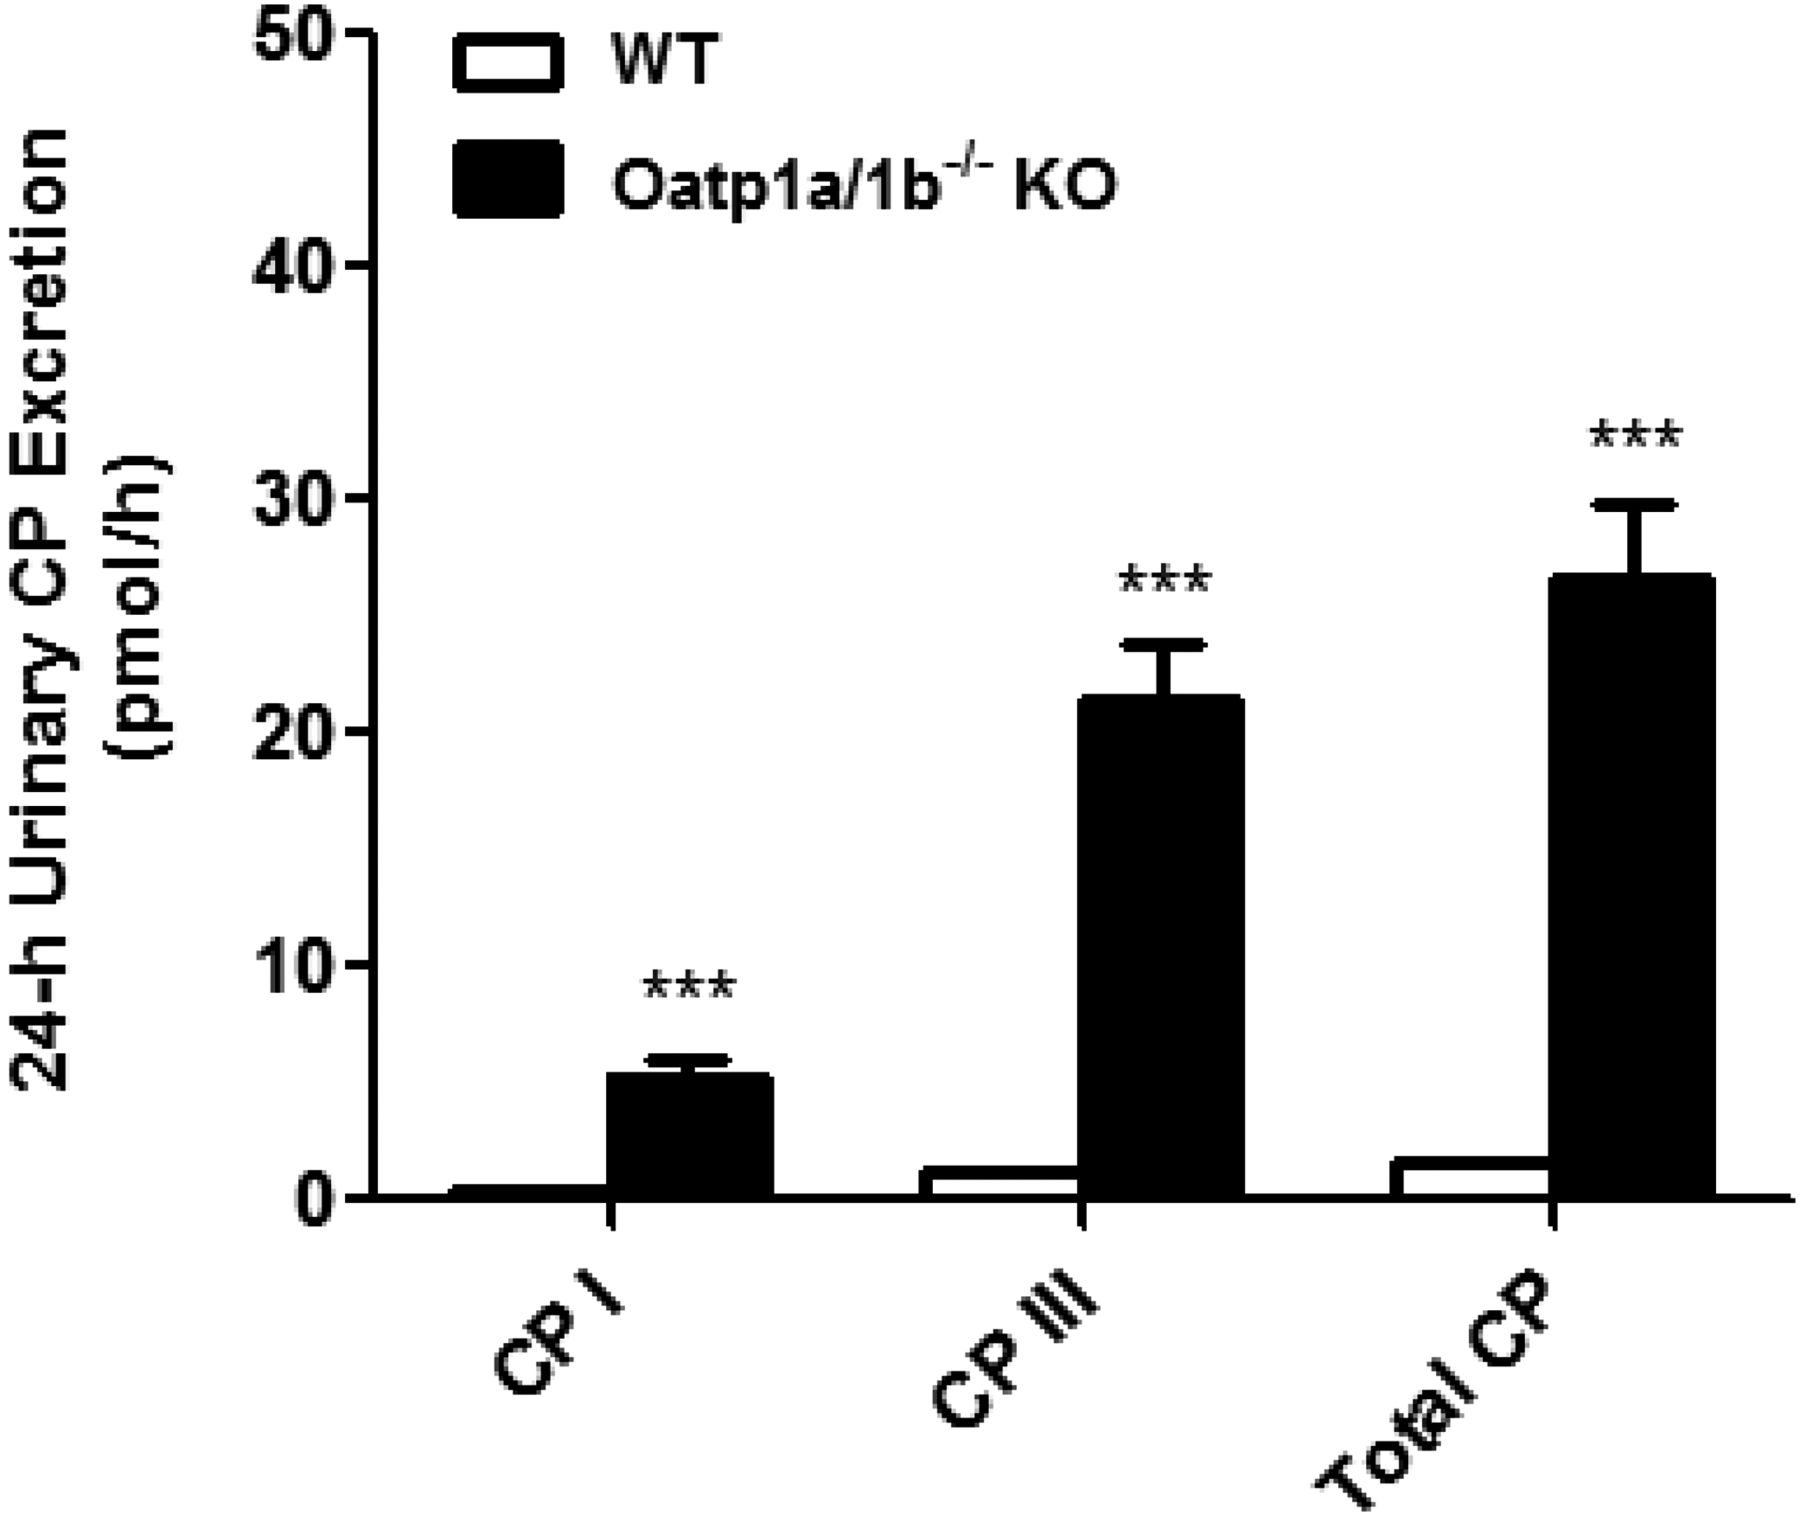 Coproporphyrins I and III as Functional Markers of OATP1B Activity